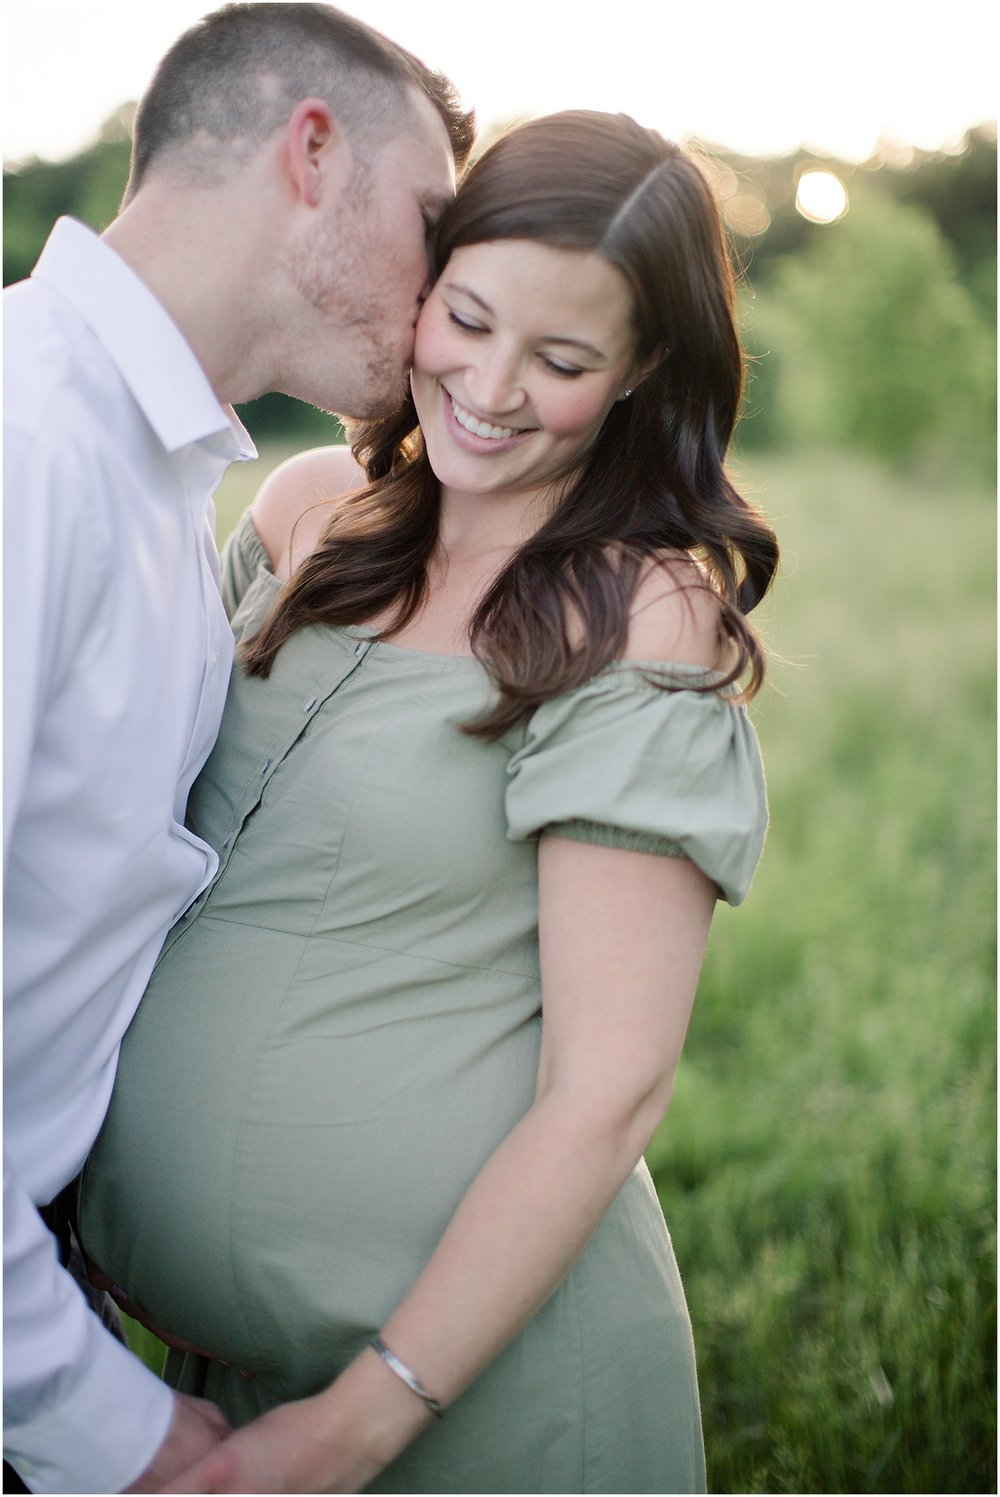 astleigh hill maternity session_0016.jpg